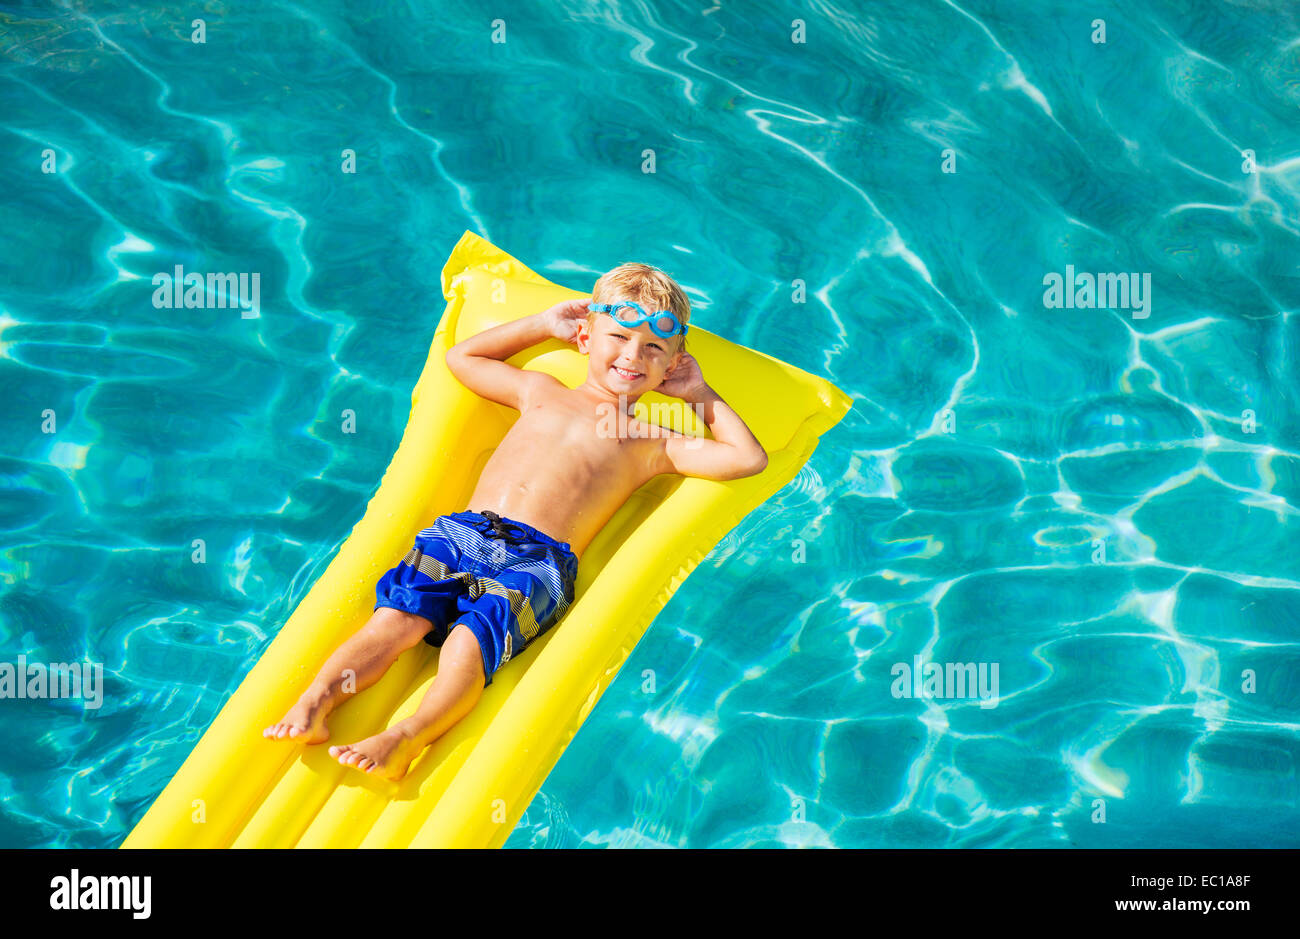 Young Boy Relaxing and Having Fun in Swimming Pool on Yellow Raft. Summer Vacation Fun. Relaxing Lifestyle Concept. - Stock Image